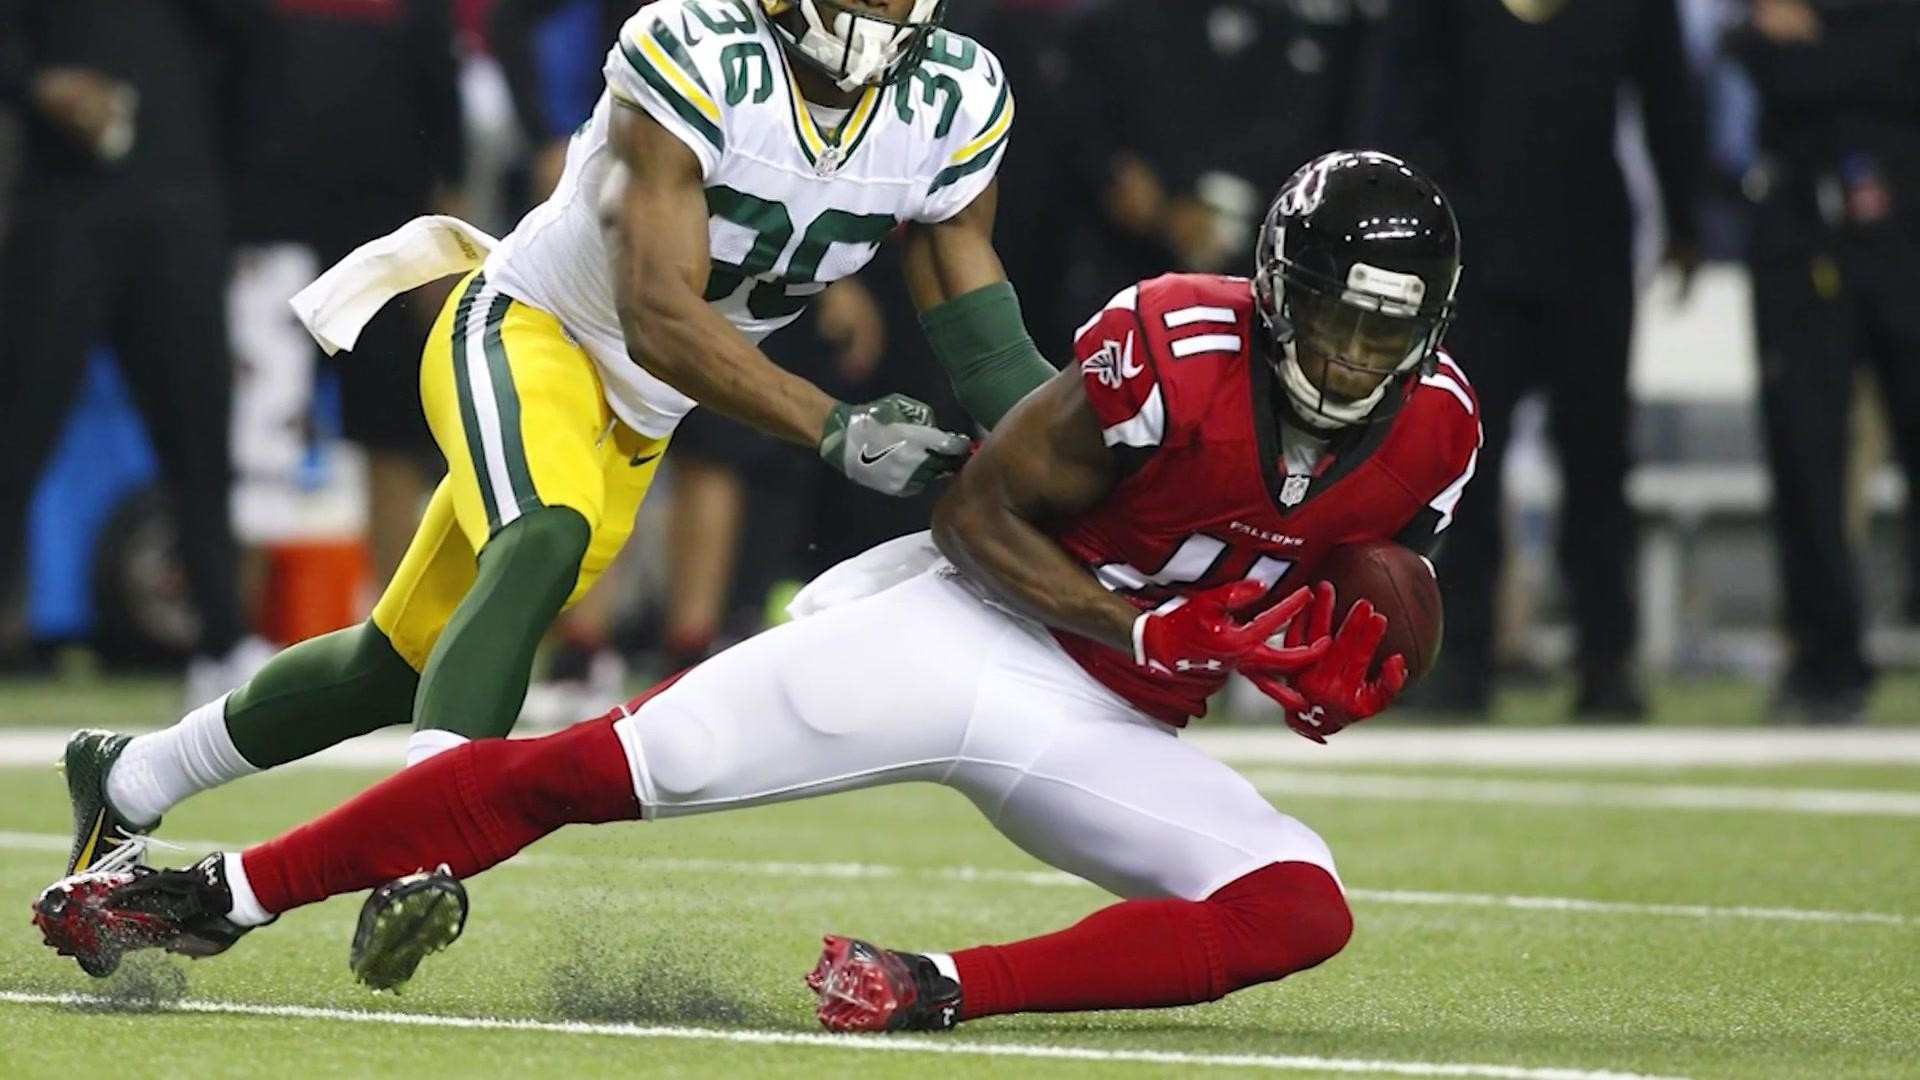 Res: 1920x1080, Troy Brown: Julio may be closest receiver to Randy Moss in a long time   NBC Sports Boston